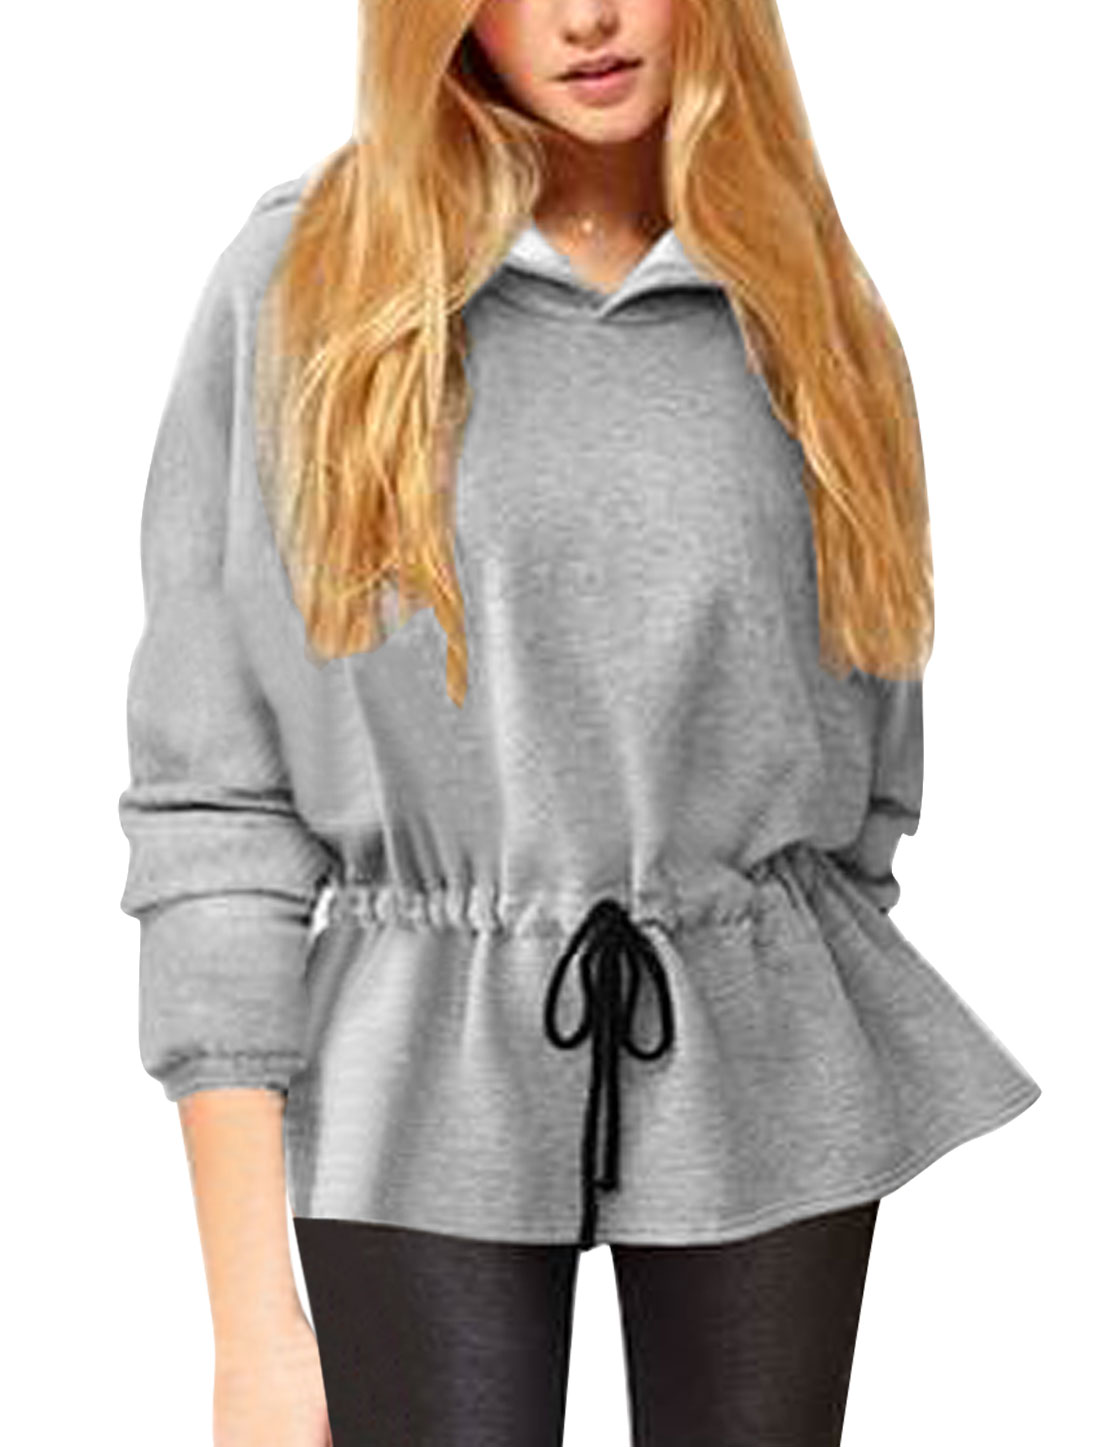 Ladies Light Gray Batwing Sleeves Loose Adjustable Drawstring Waist Hoodie XS